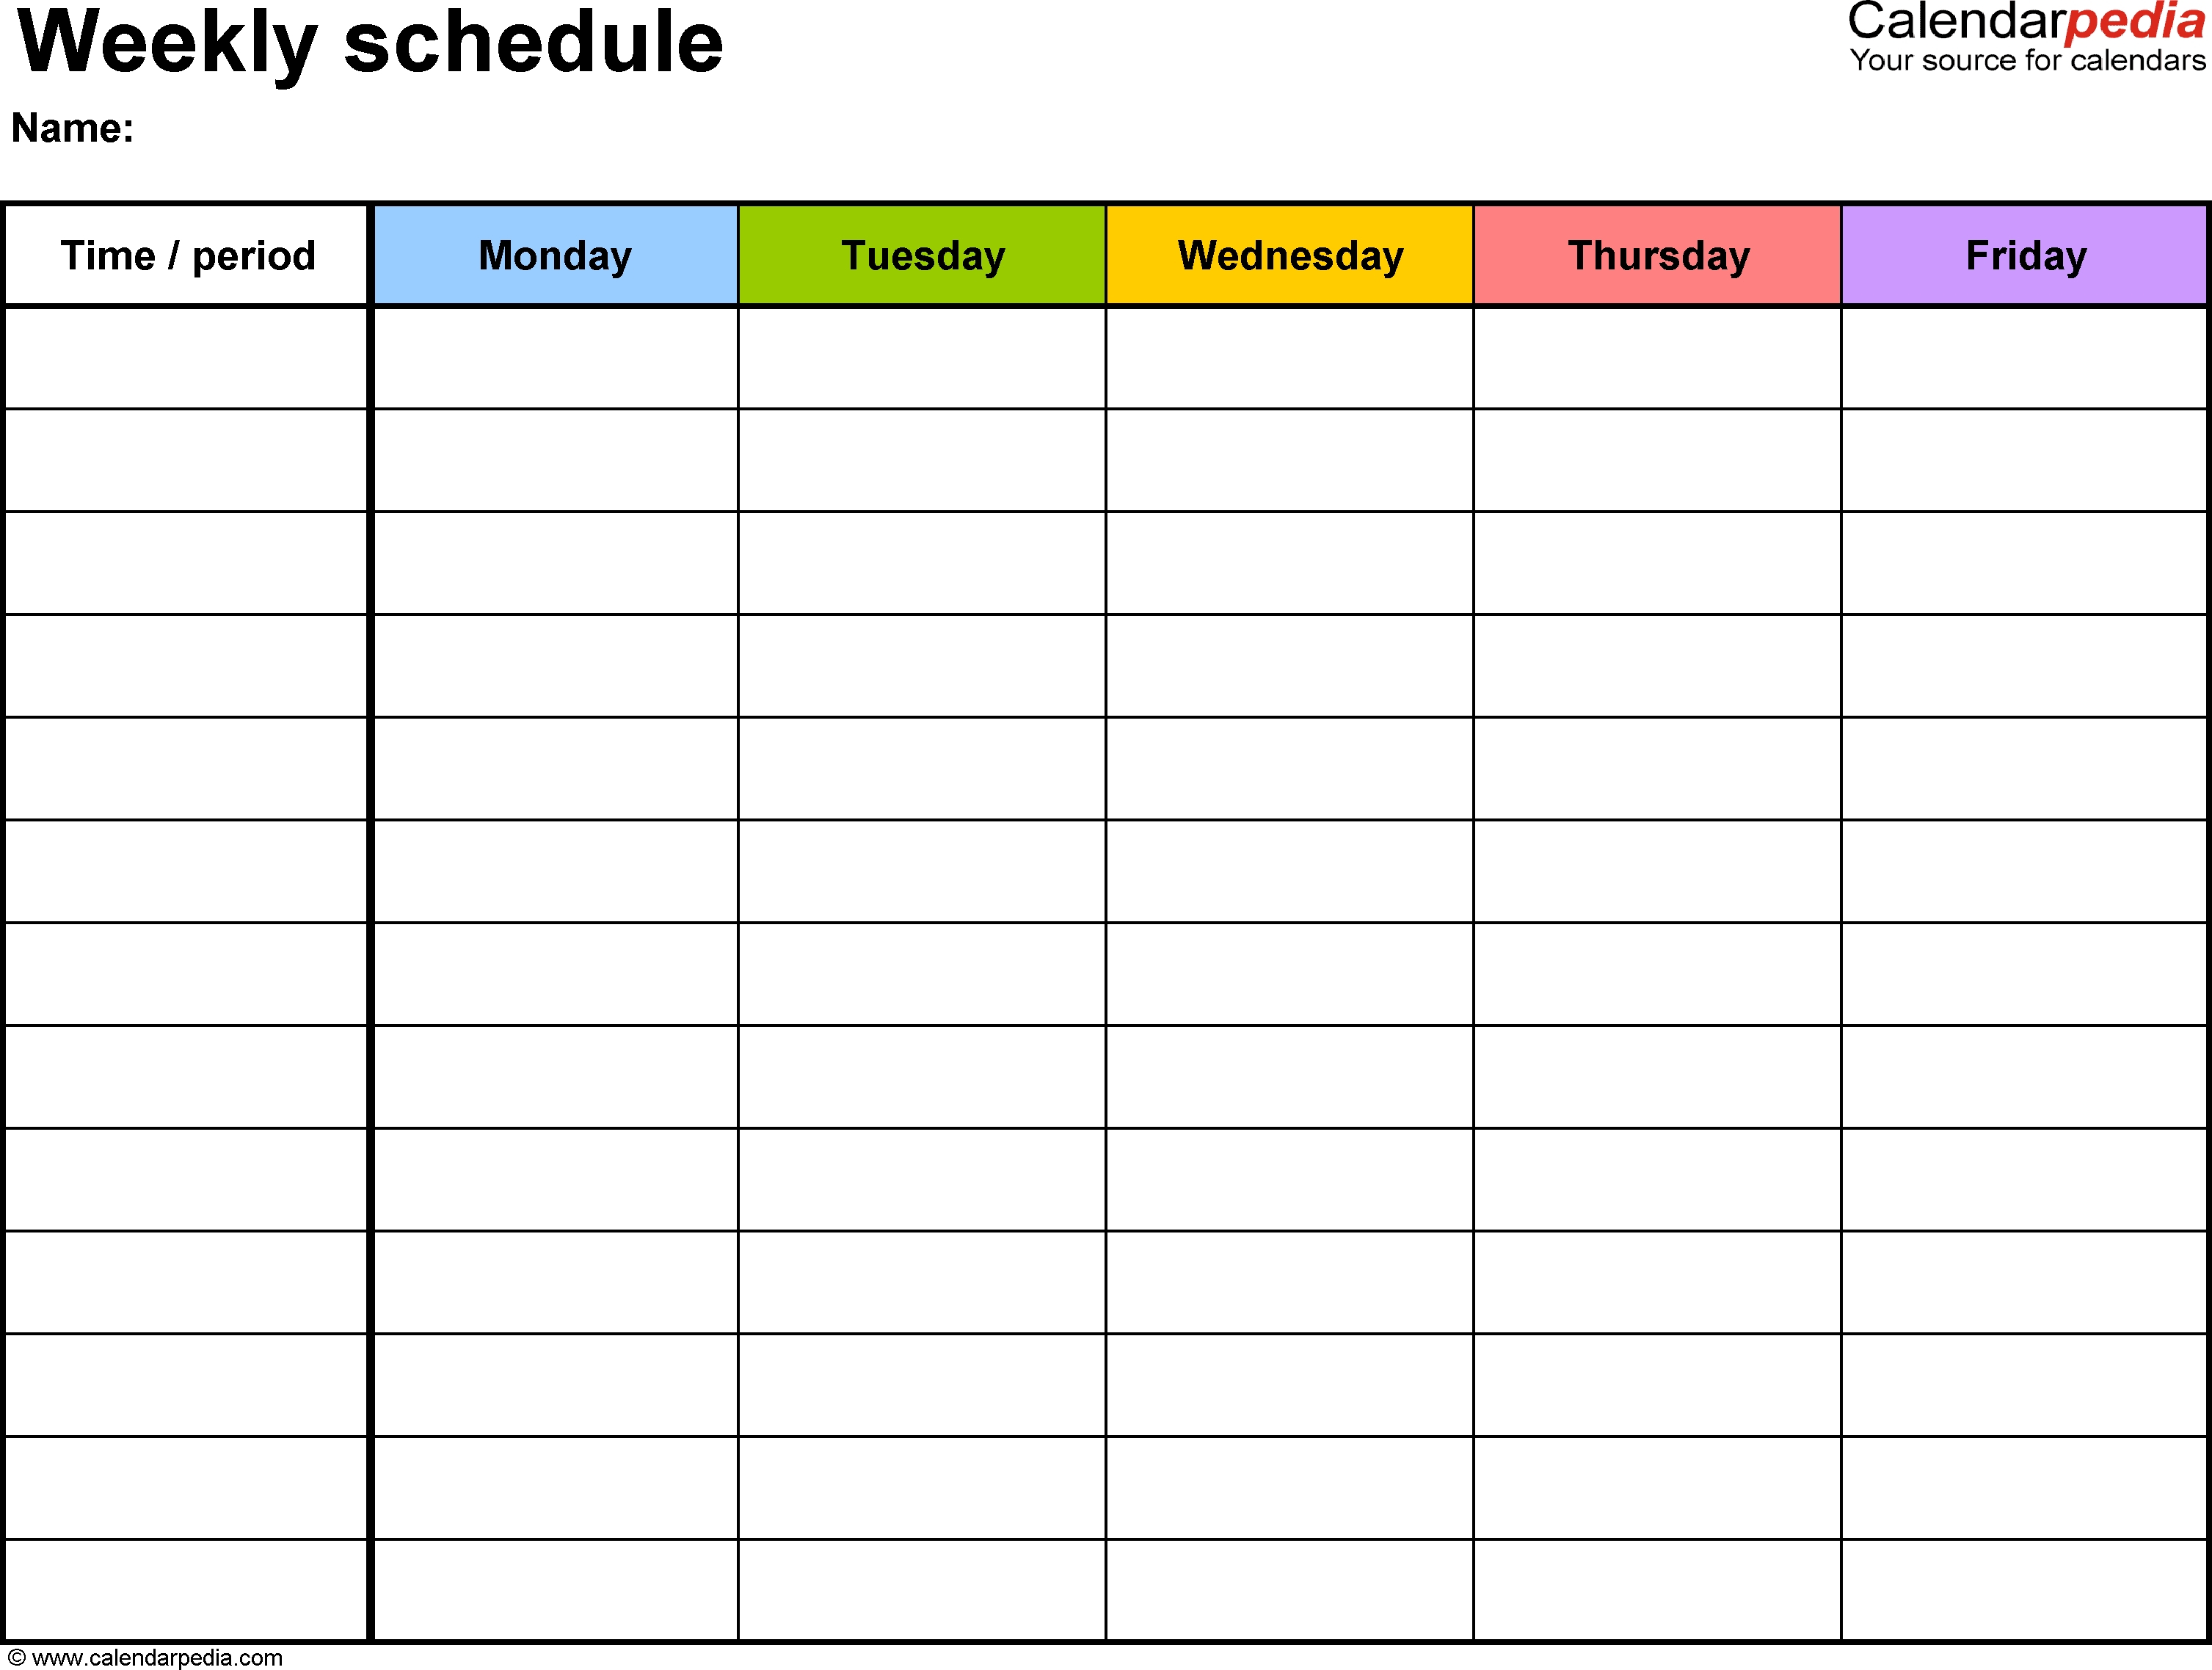 Catch Extra Large Printable Blank Weekly Employee Schedule ⋆ The throughout Extra Large Printable Blank Weekly Employee Schedule